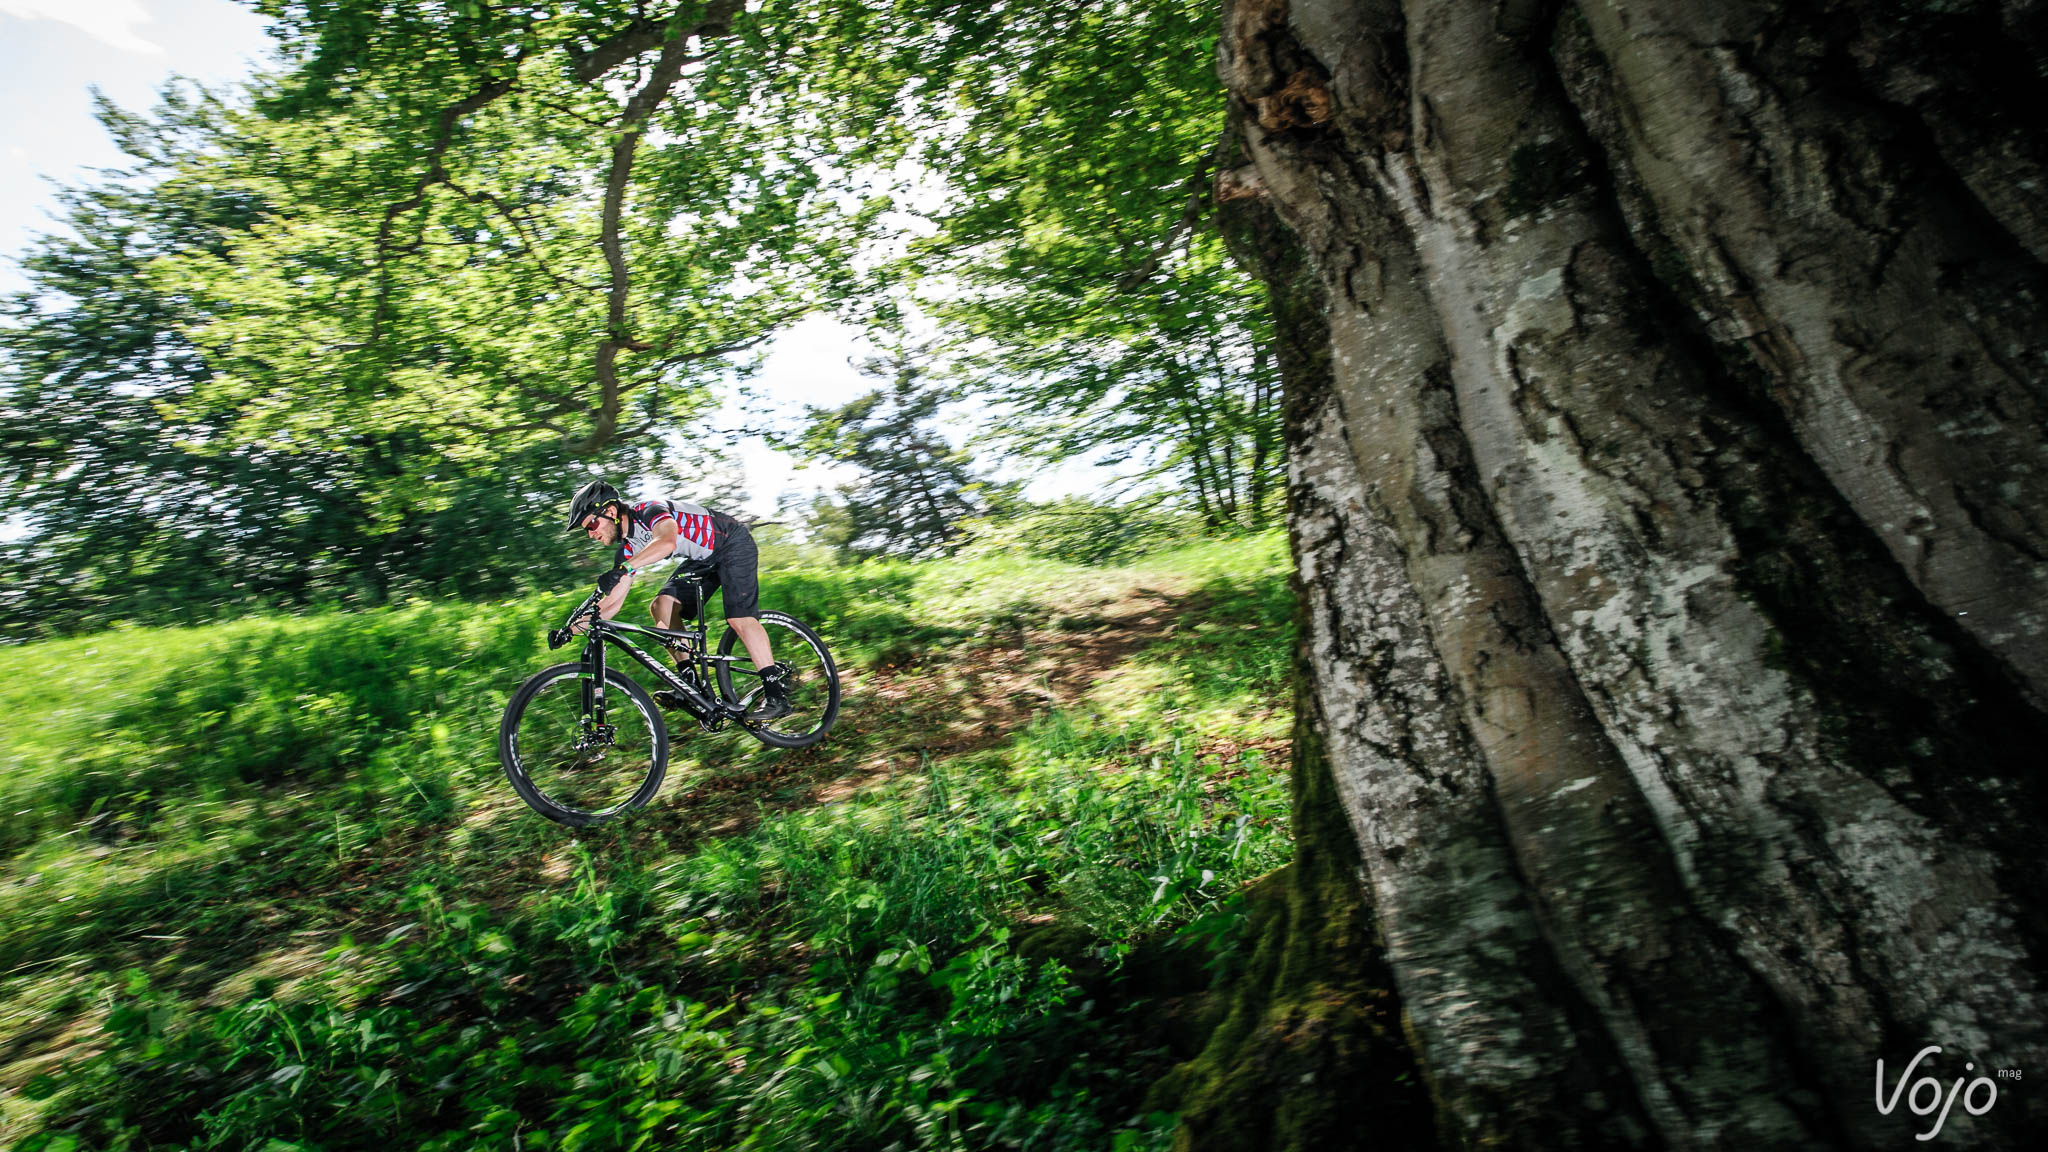 Merida_96_nouveaute_2016_Action_test_Copyright_MTBCult_OBeart_VojoMag-9